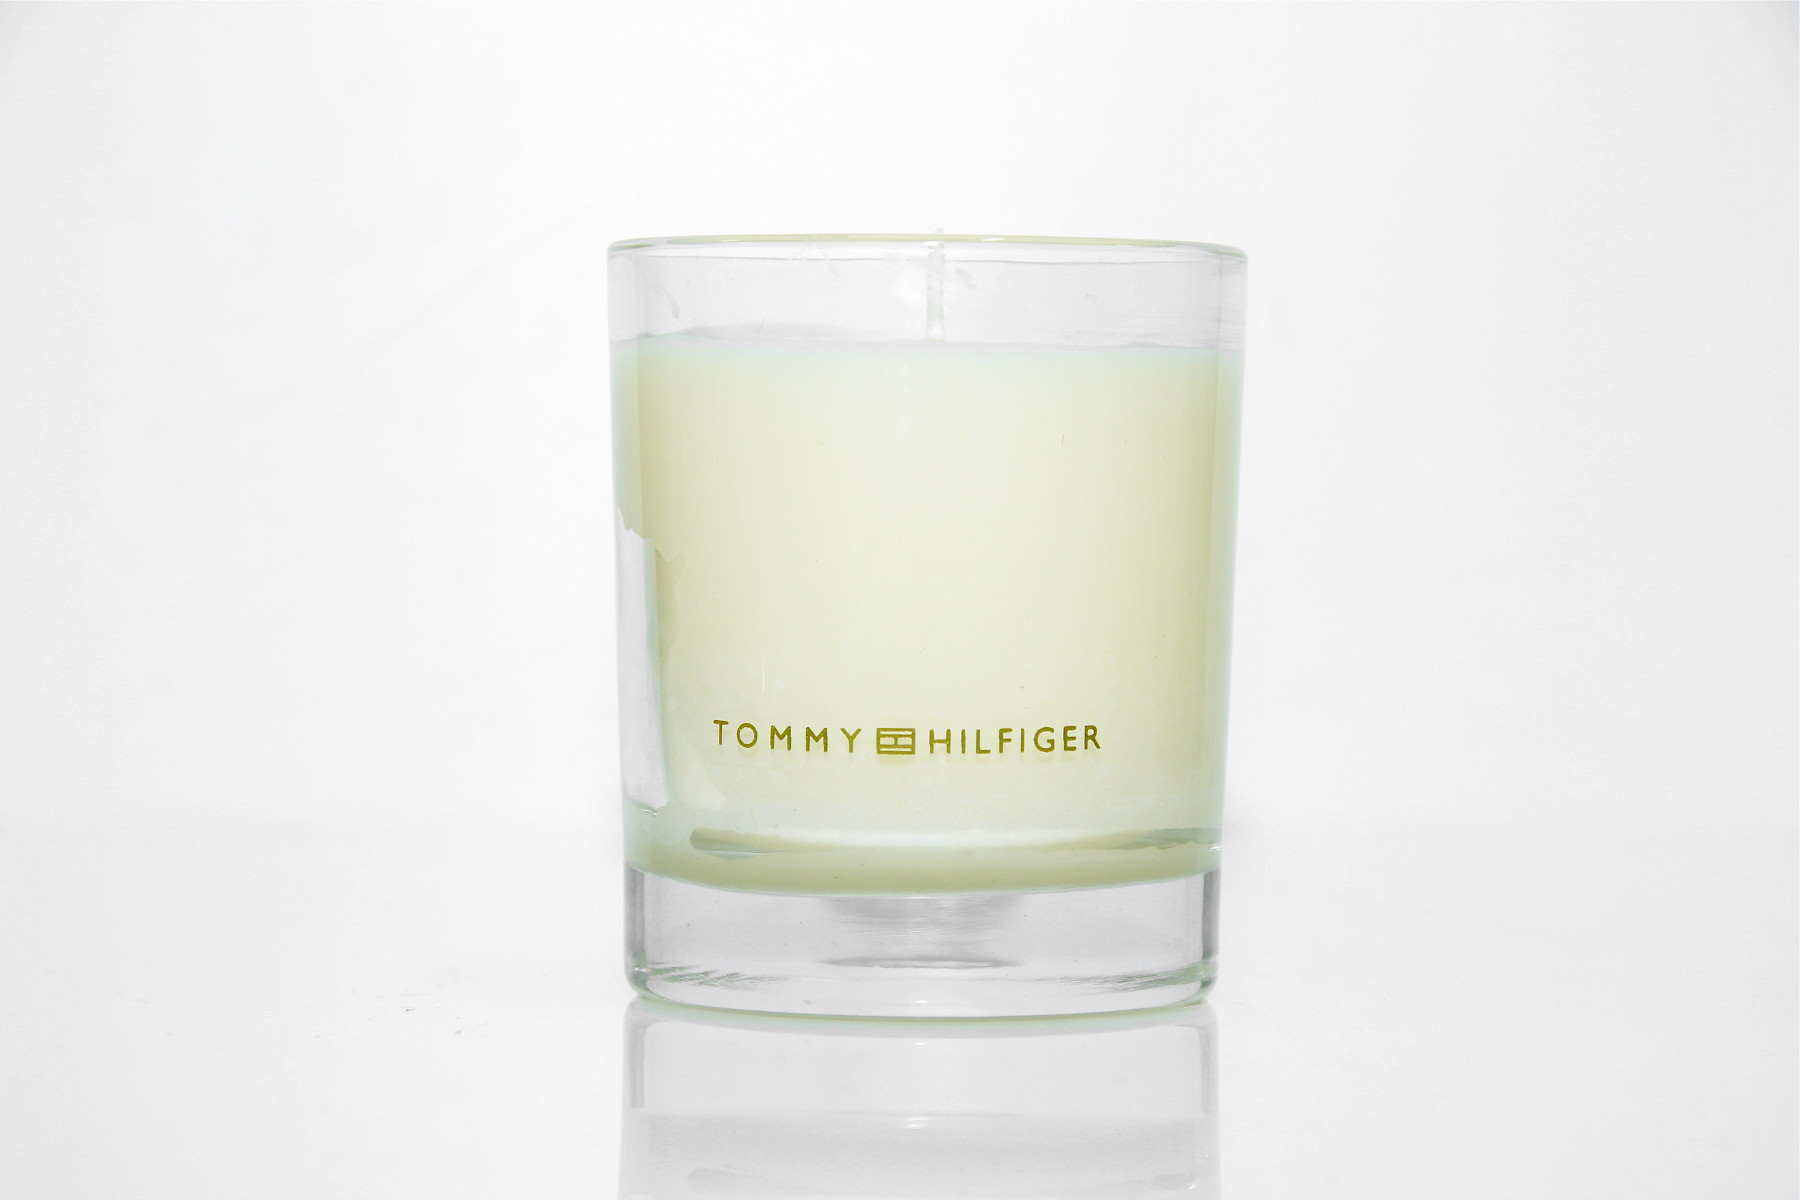 Tommy Hilfiger Candle - Christmas Giveaway